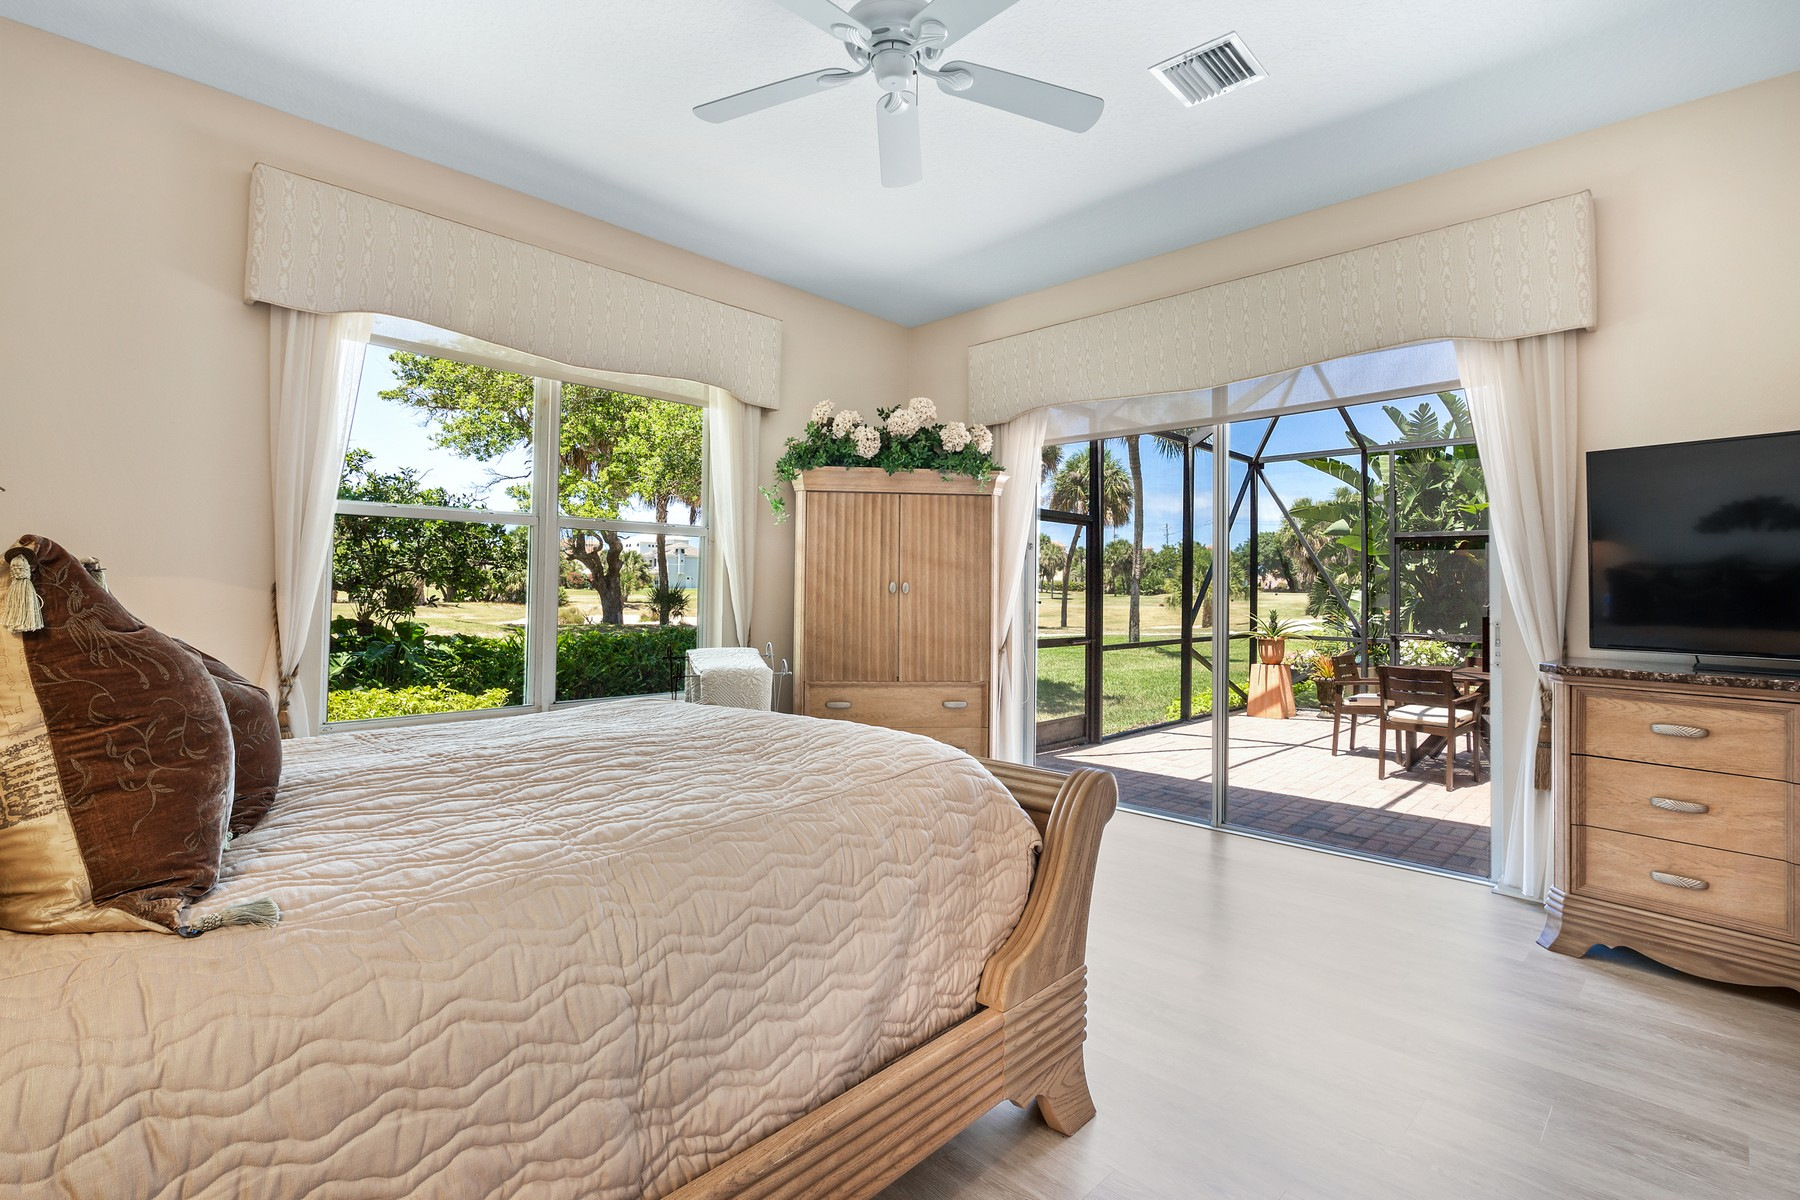 Additional photo for property listing at Osprey Villas East 130 Whaler Drive Melbourne Beach, Florida 32951 United States